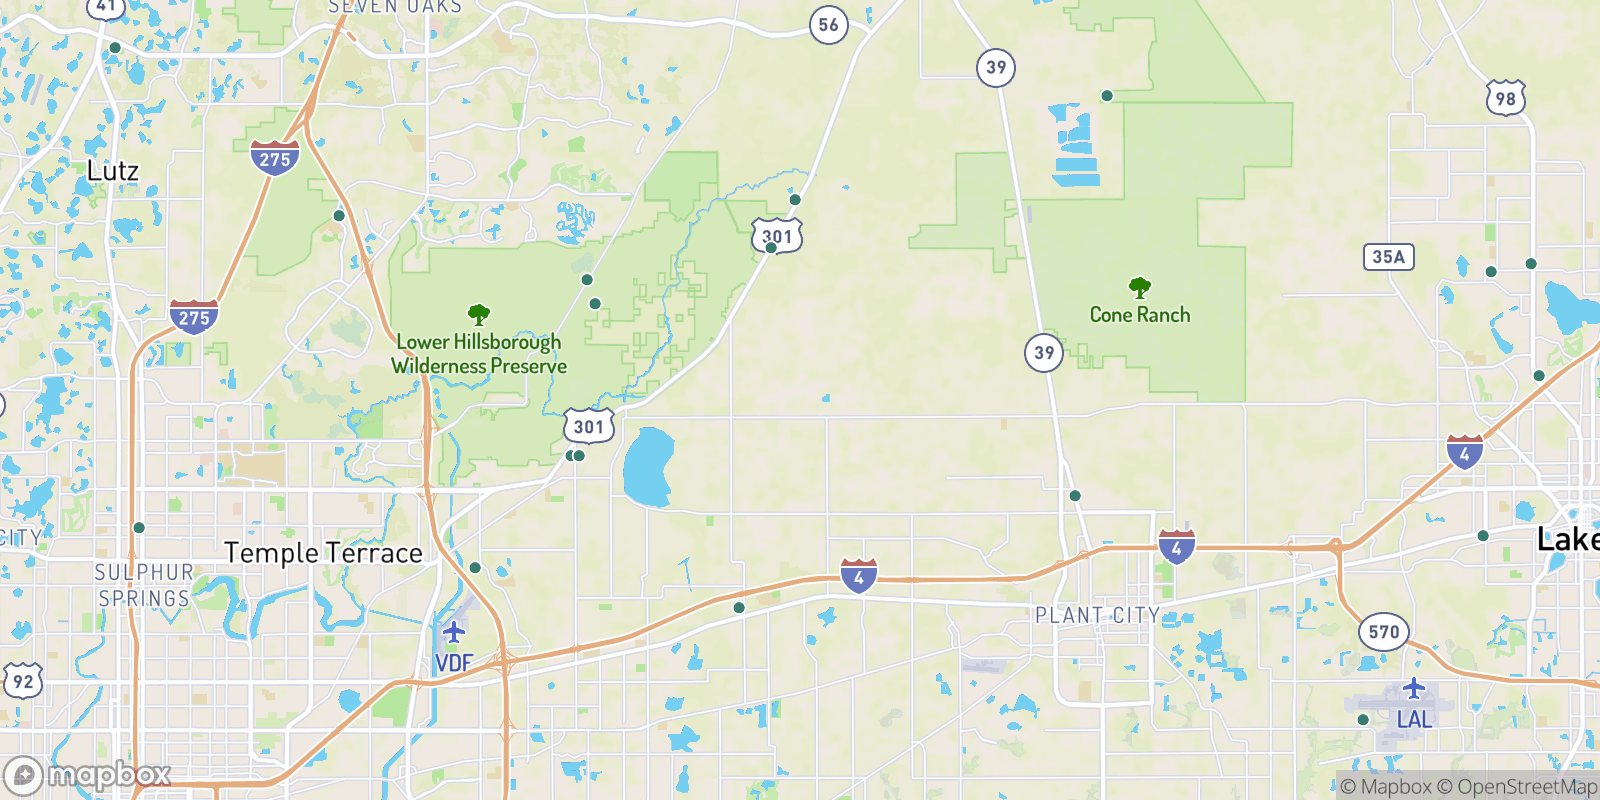 The best camping near Schiffers Acres, Florida